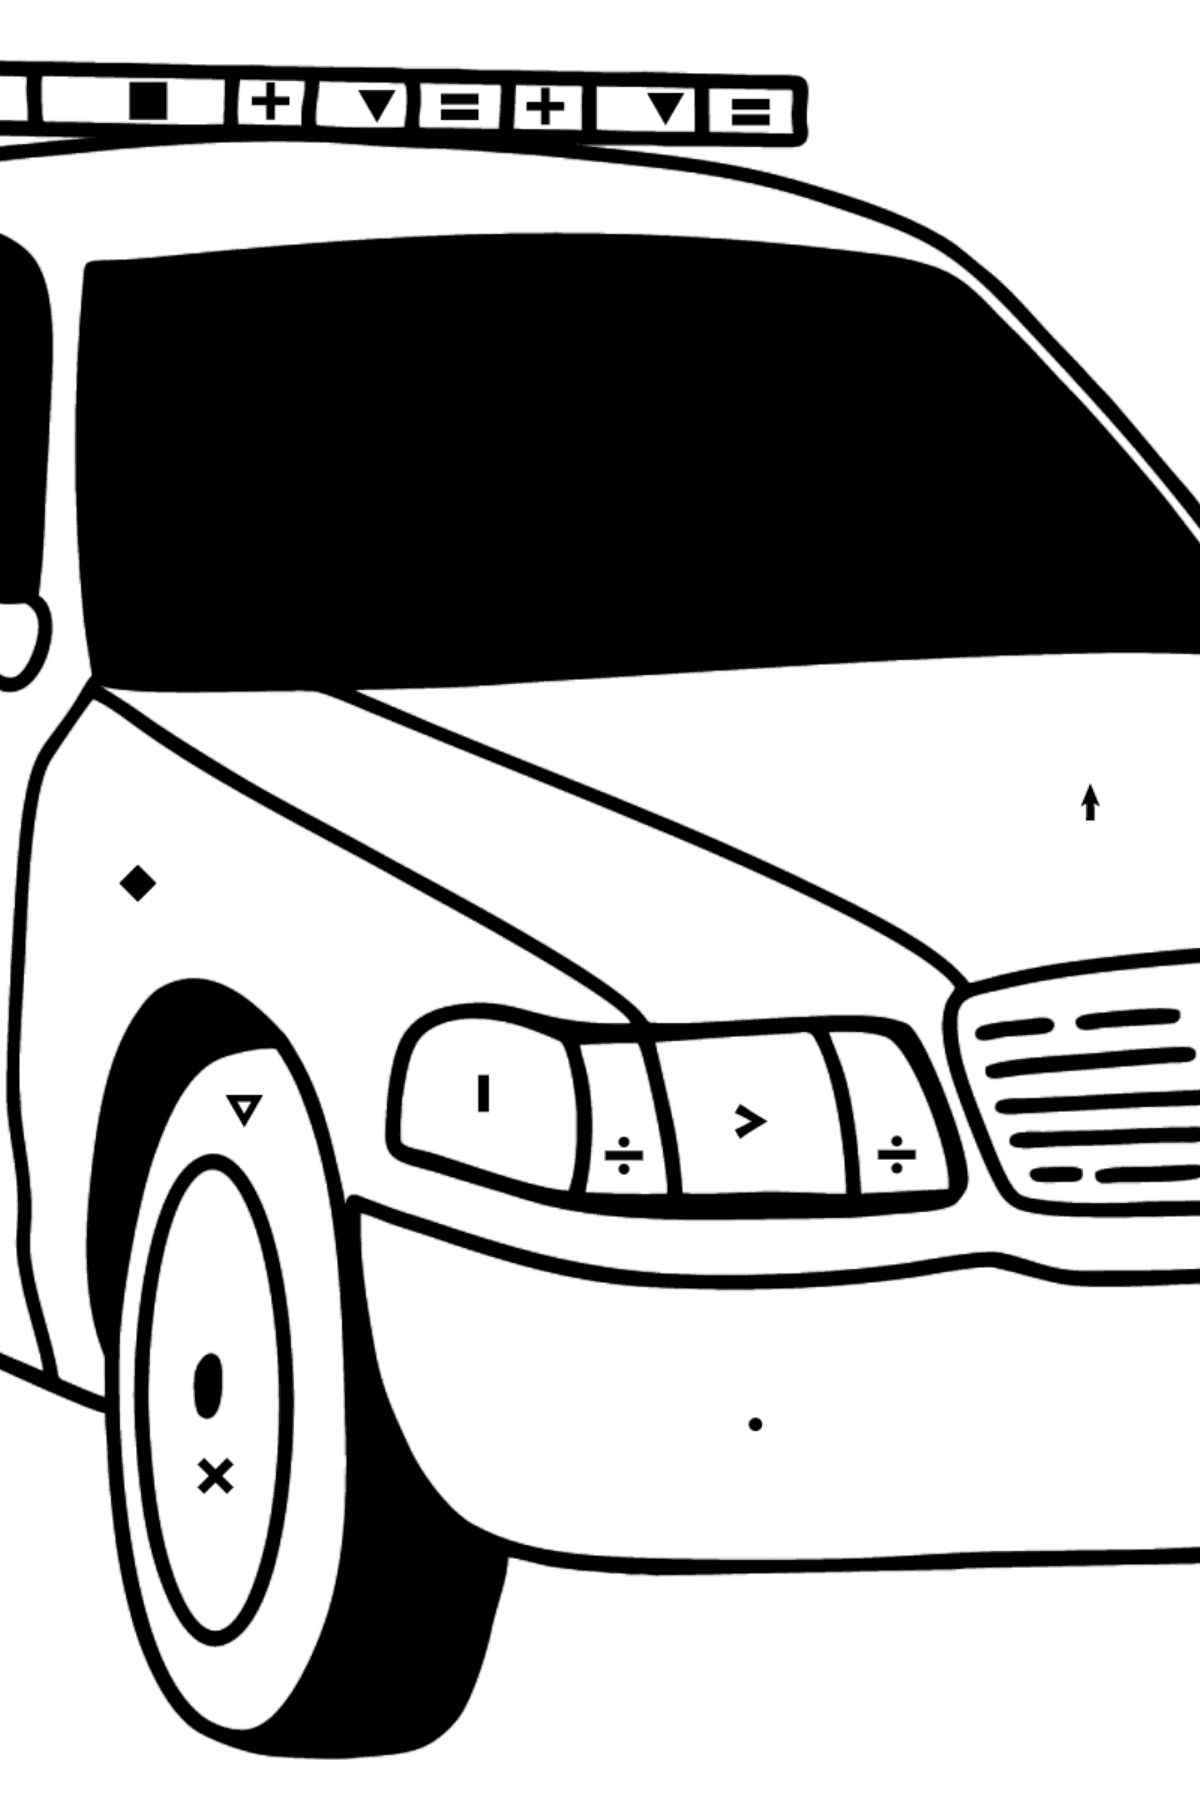 US Police Car coloring page - Coloring by Symbols for Kids